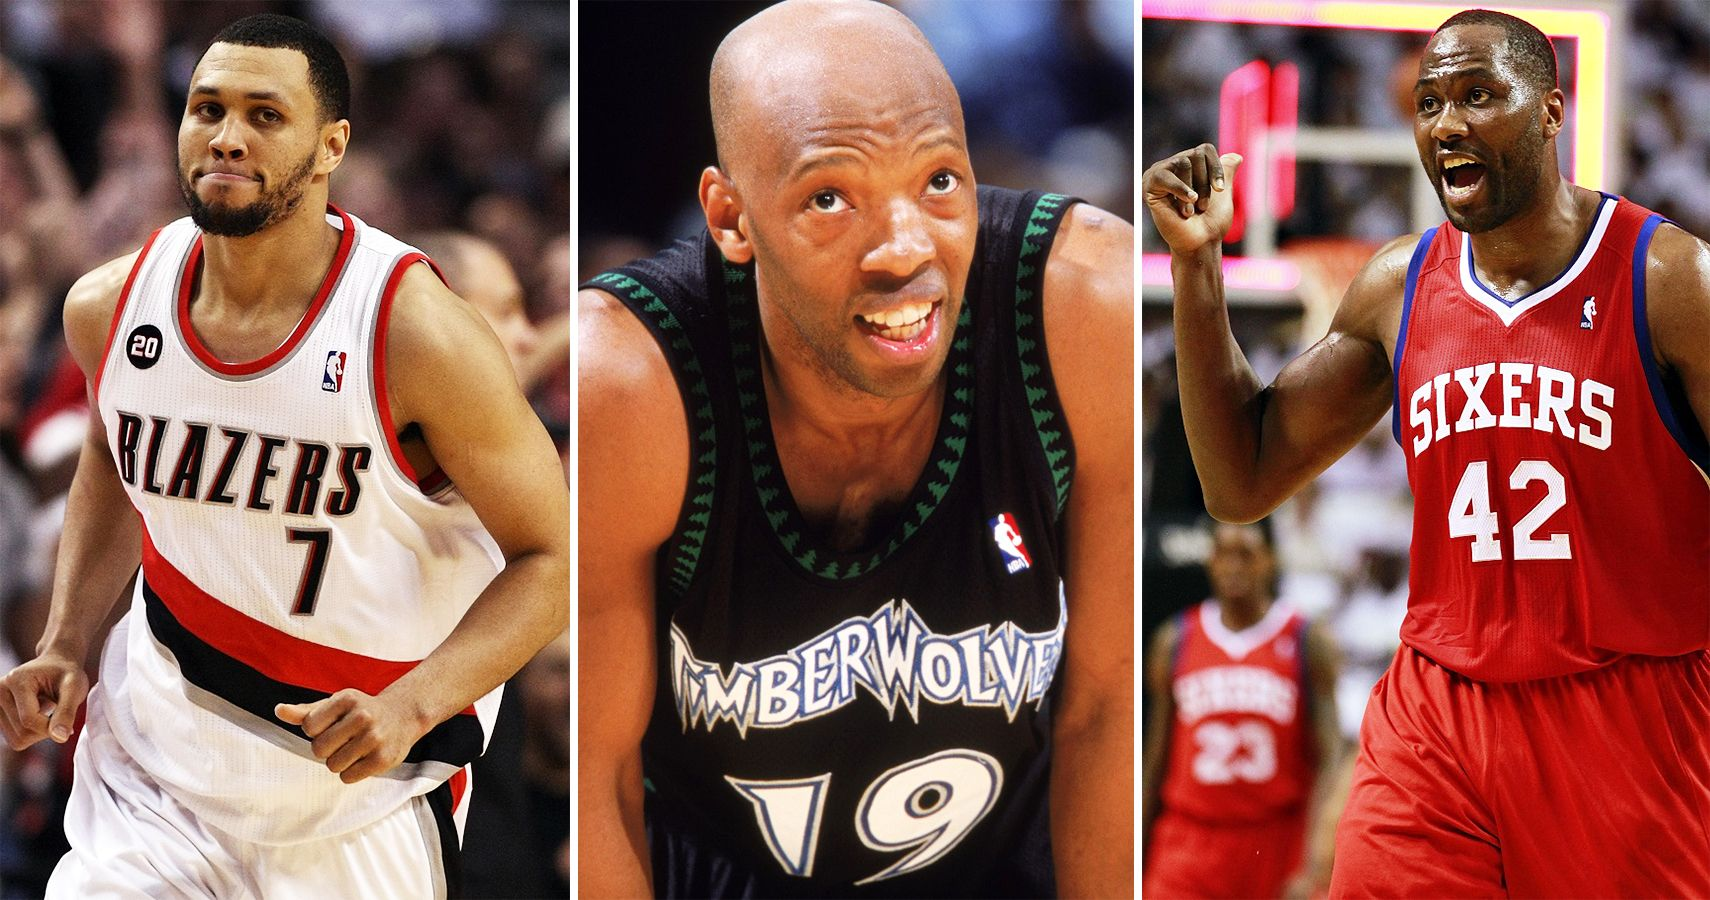 Top 15 NBA Stars From The 2000s You Forgot About